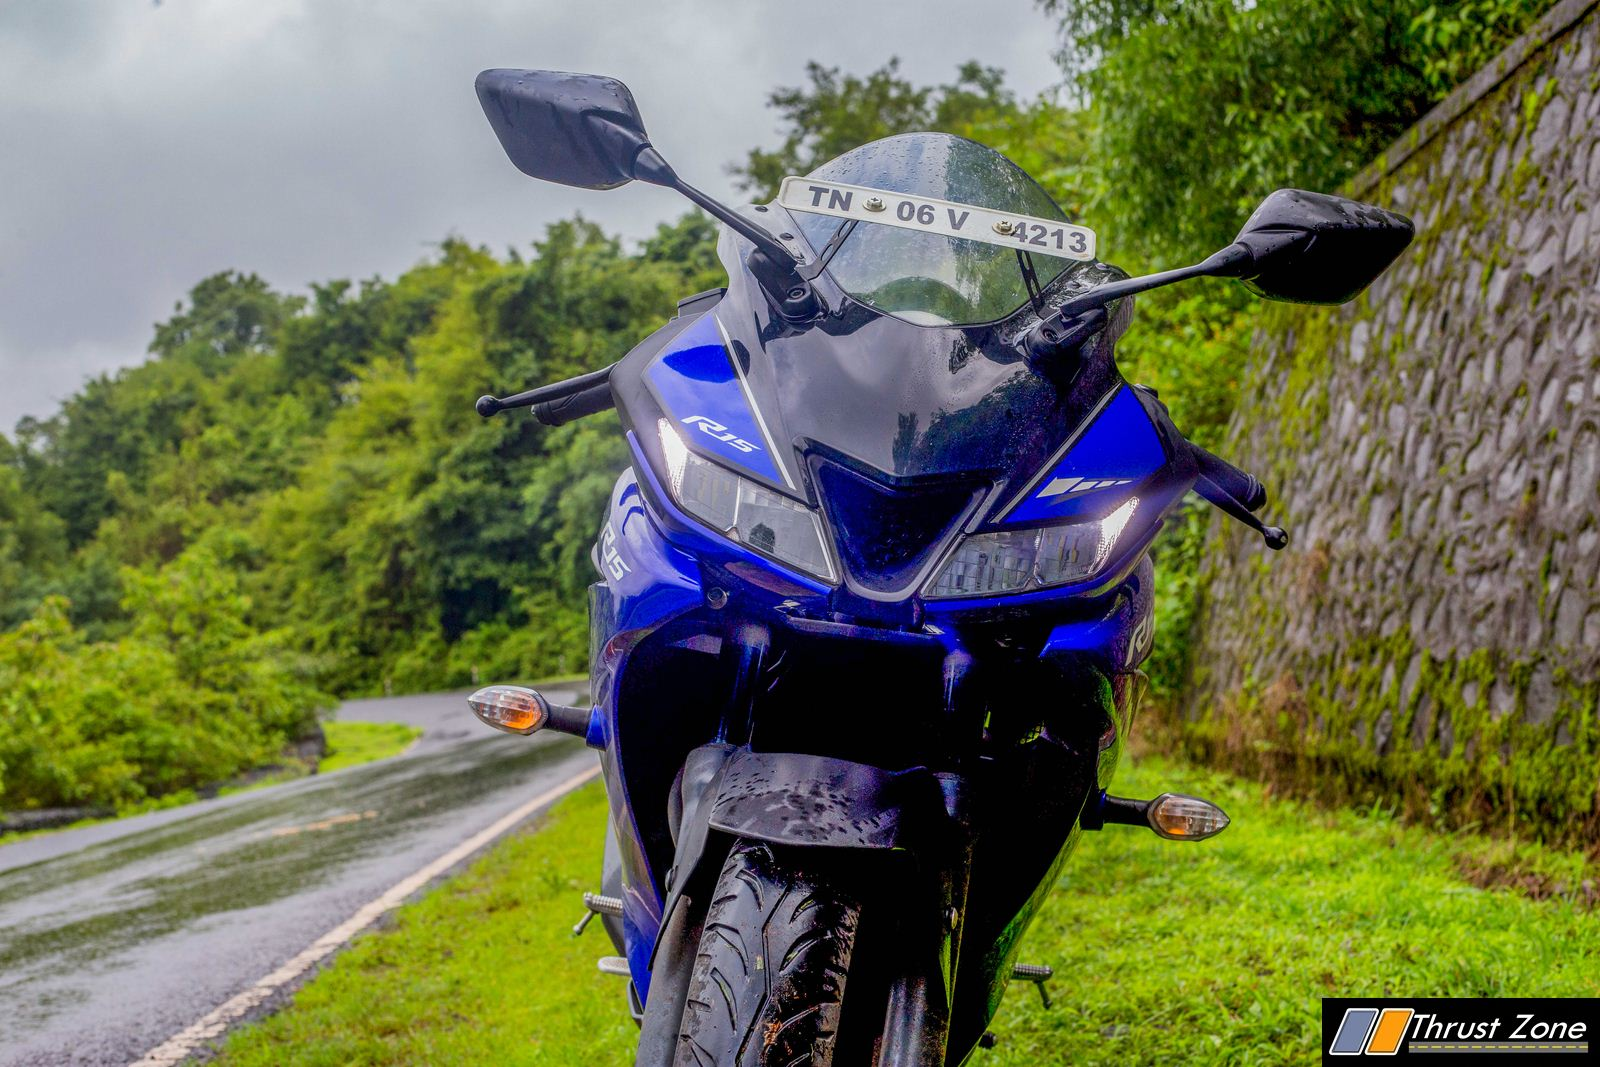 https://www.thrustzone.com/wp-content/uploads/2018/07/Yamaha-R15-V3-Review-Road-Test-24.jpg